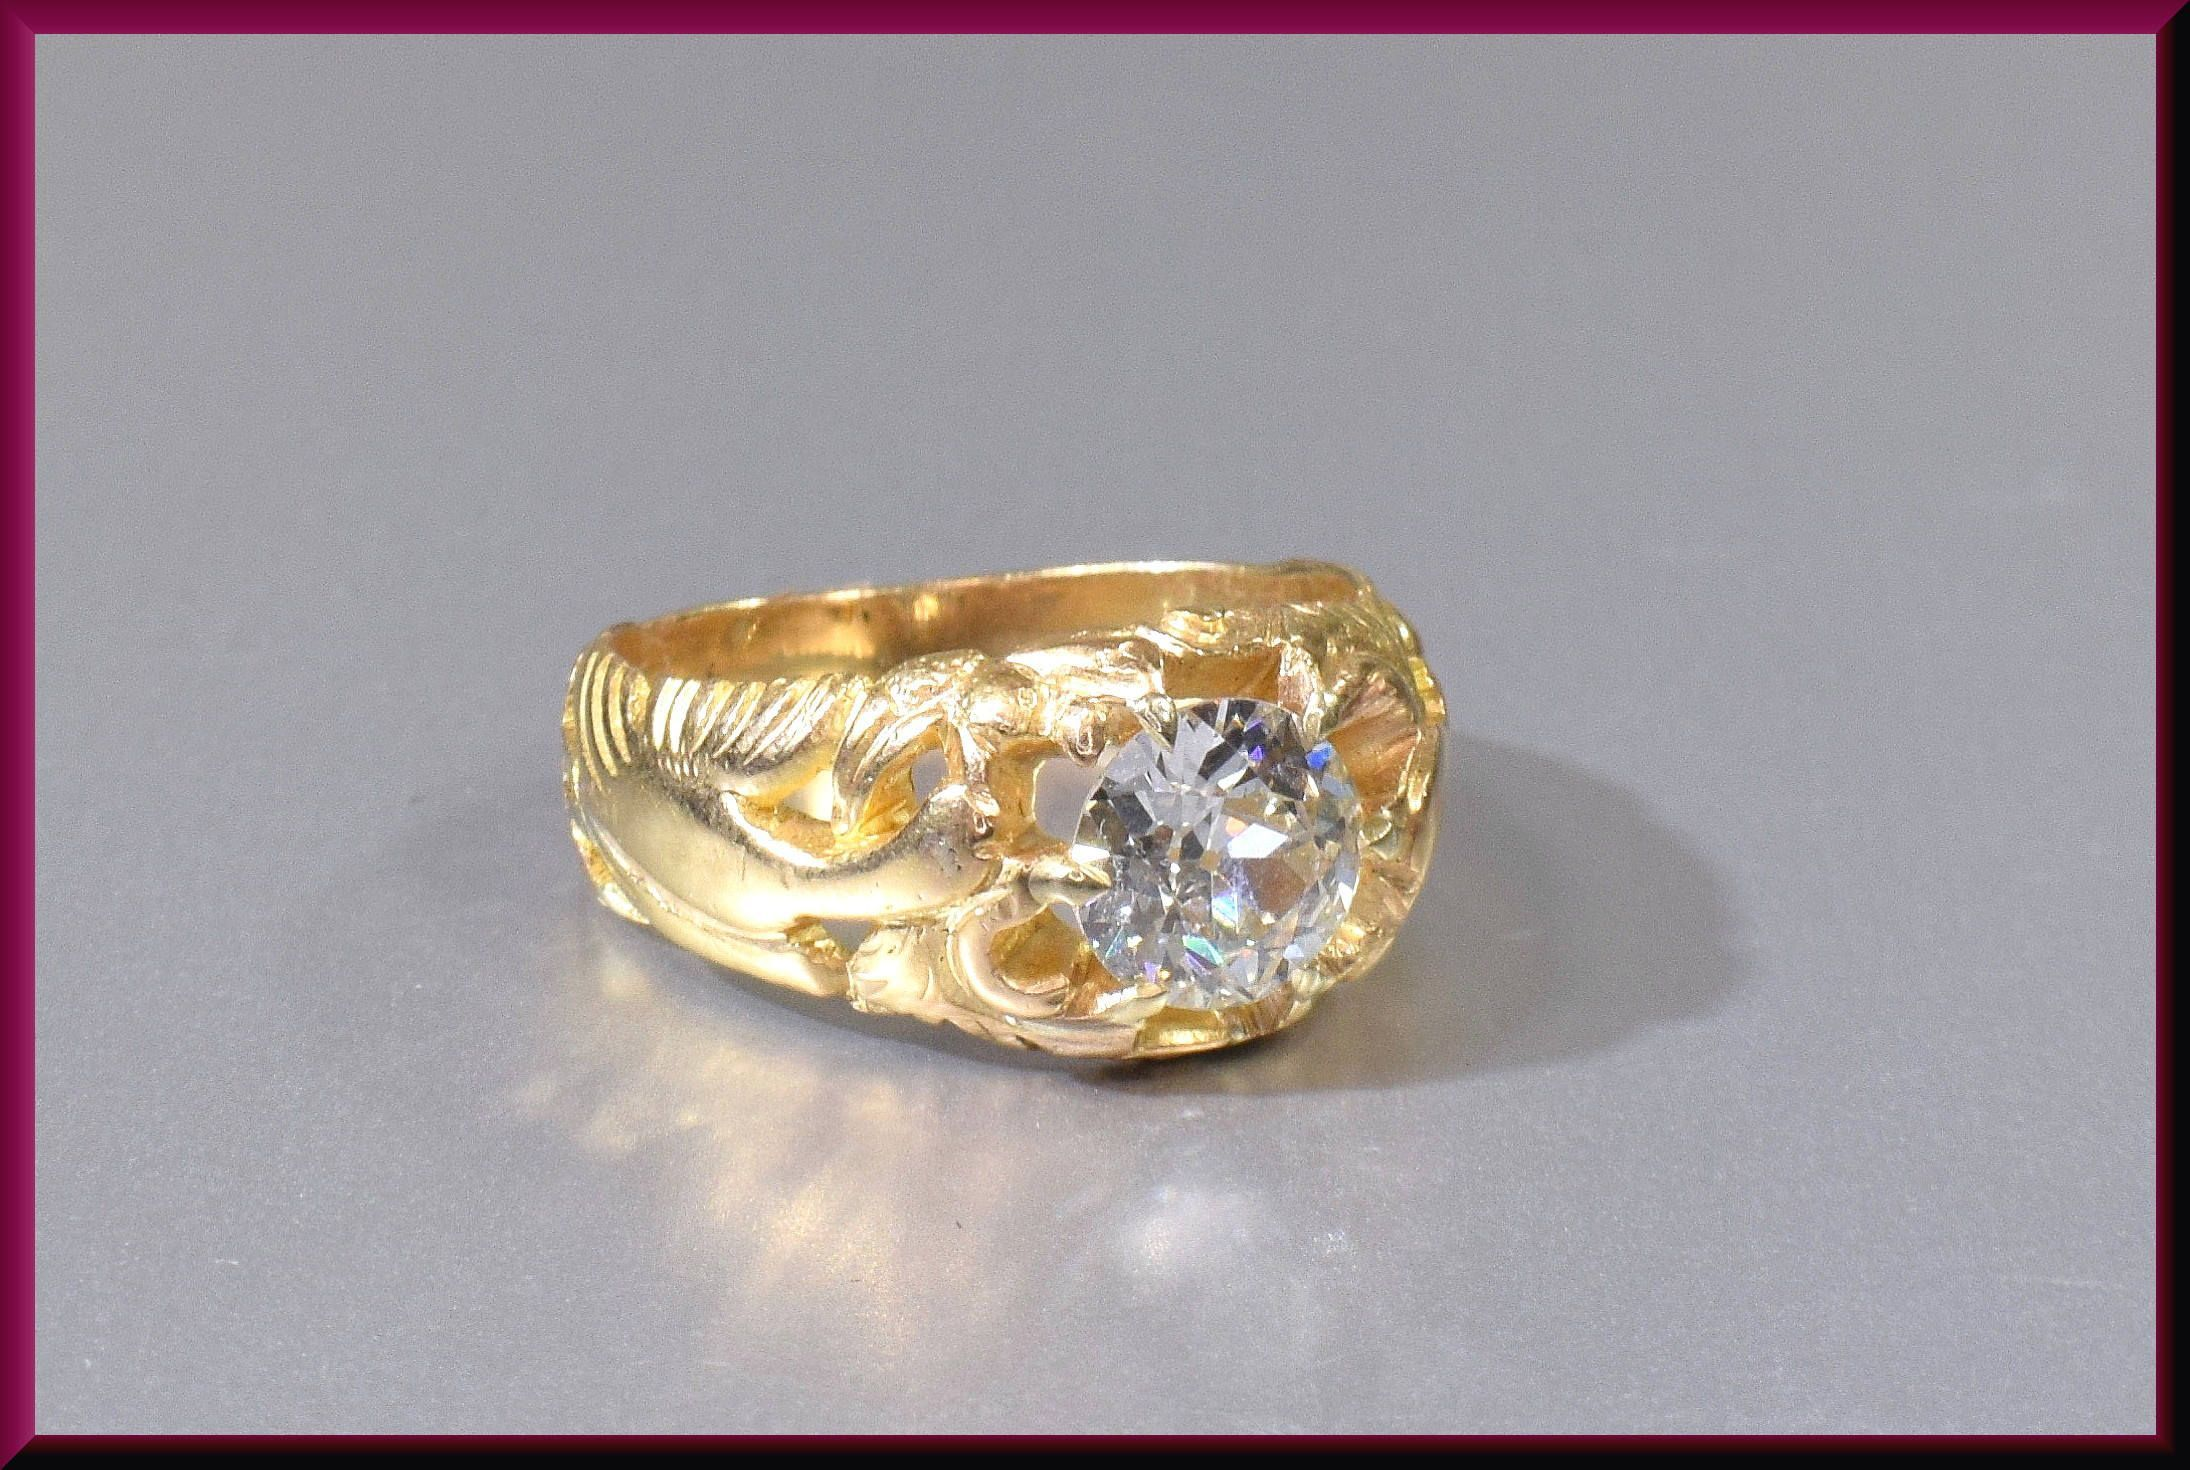 Victorian Engagement Ring Antique With Old European Cut Diamond Platinum Wedding By Antiquejewelrynyc